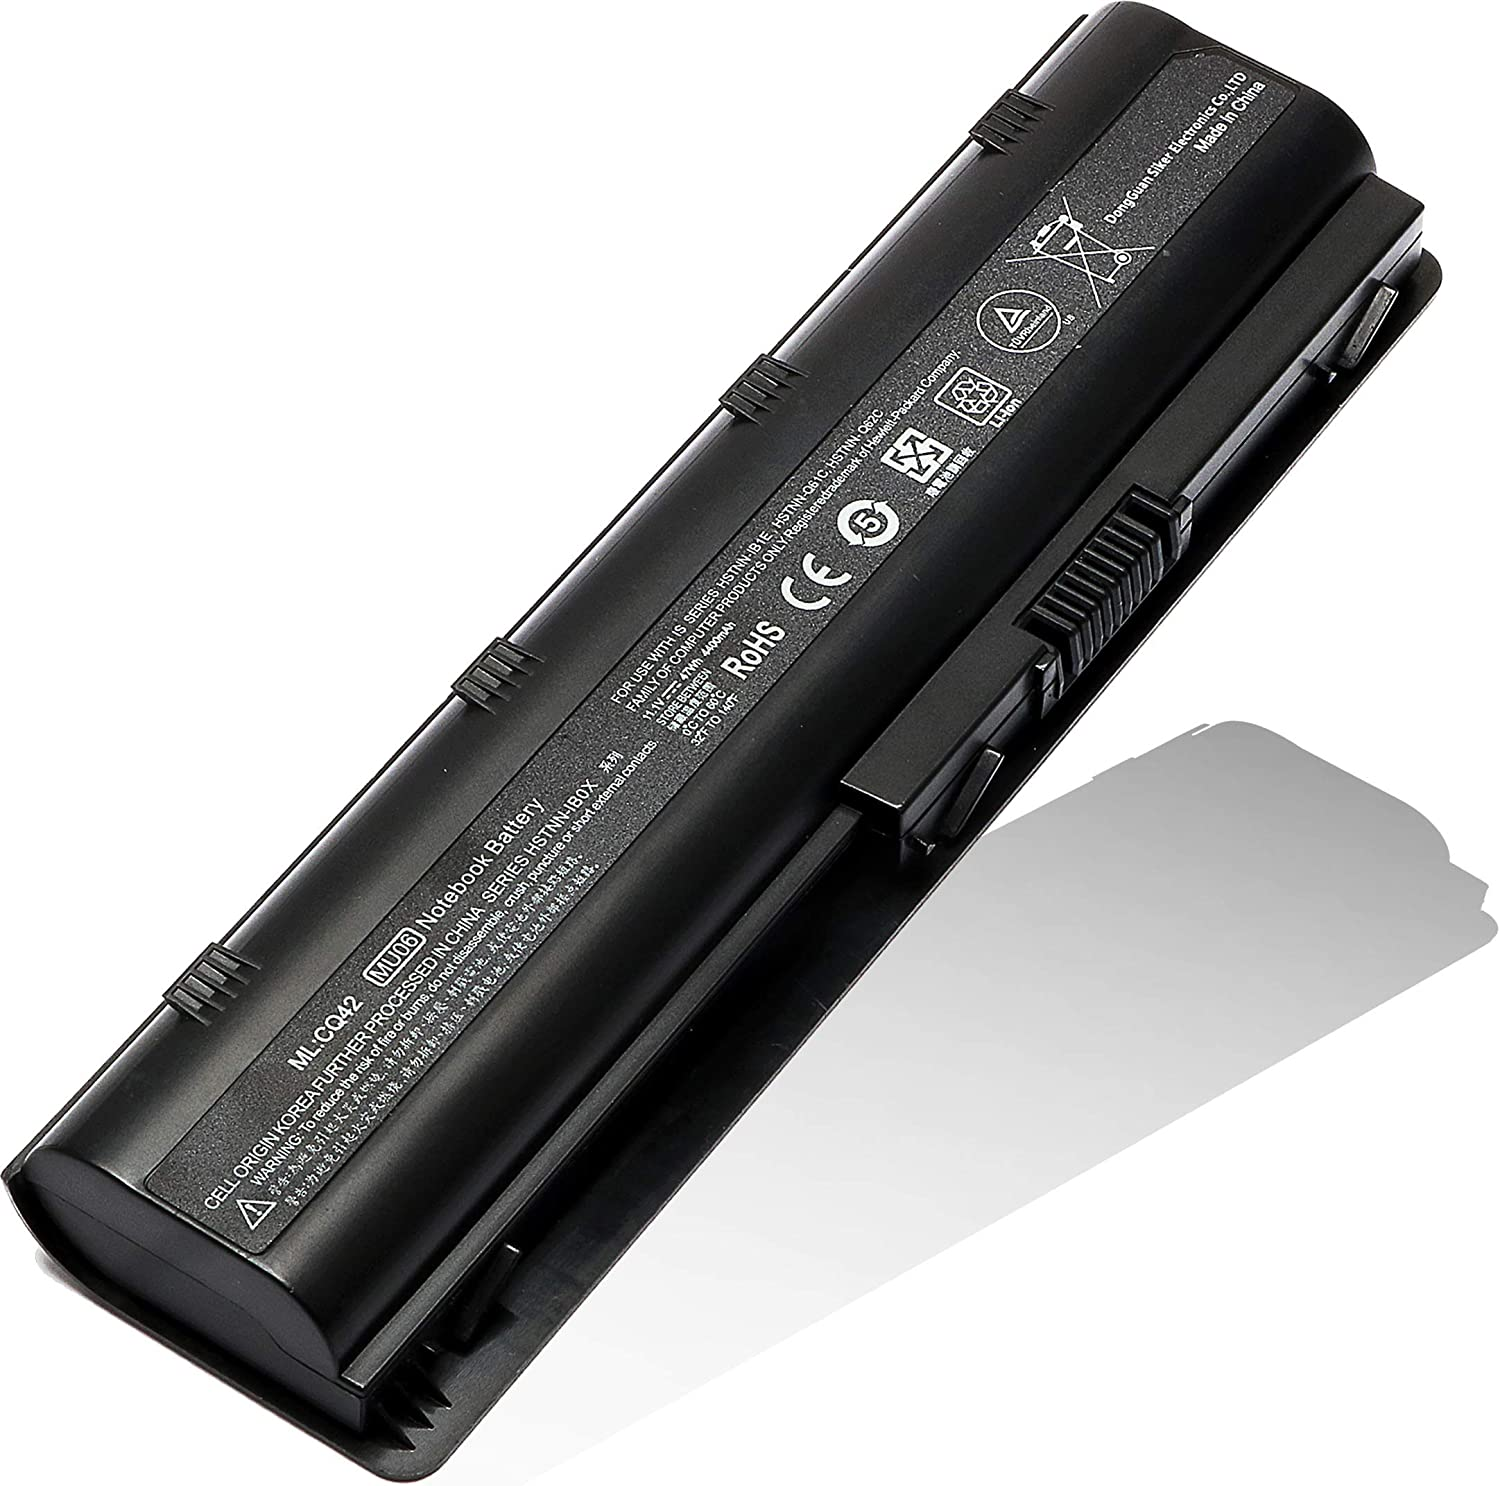 MU06 593553-001 Battery Replacement for HP Pavilion Dv7 fit Dv7-4053cl Dv7-4065dx Dv7-4285dx Dv7-6b55dx Dv7-6b78us Dv7-6135dx Dv7-7023cl Dm4 Dm4-2165dx Dm4-3050us Dm4-1265dx Notebook Spare 593554-001